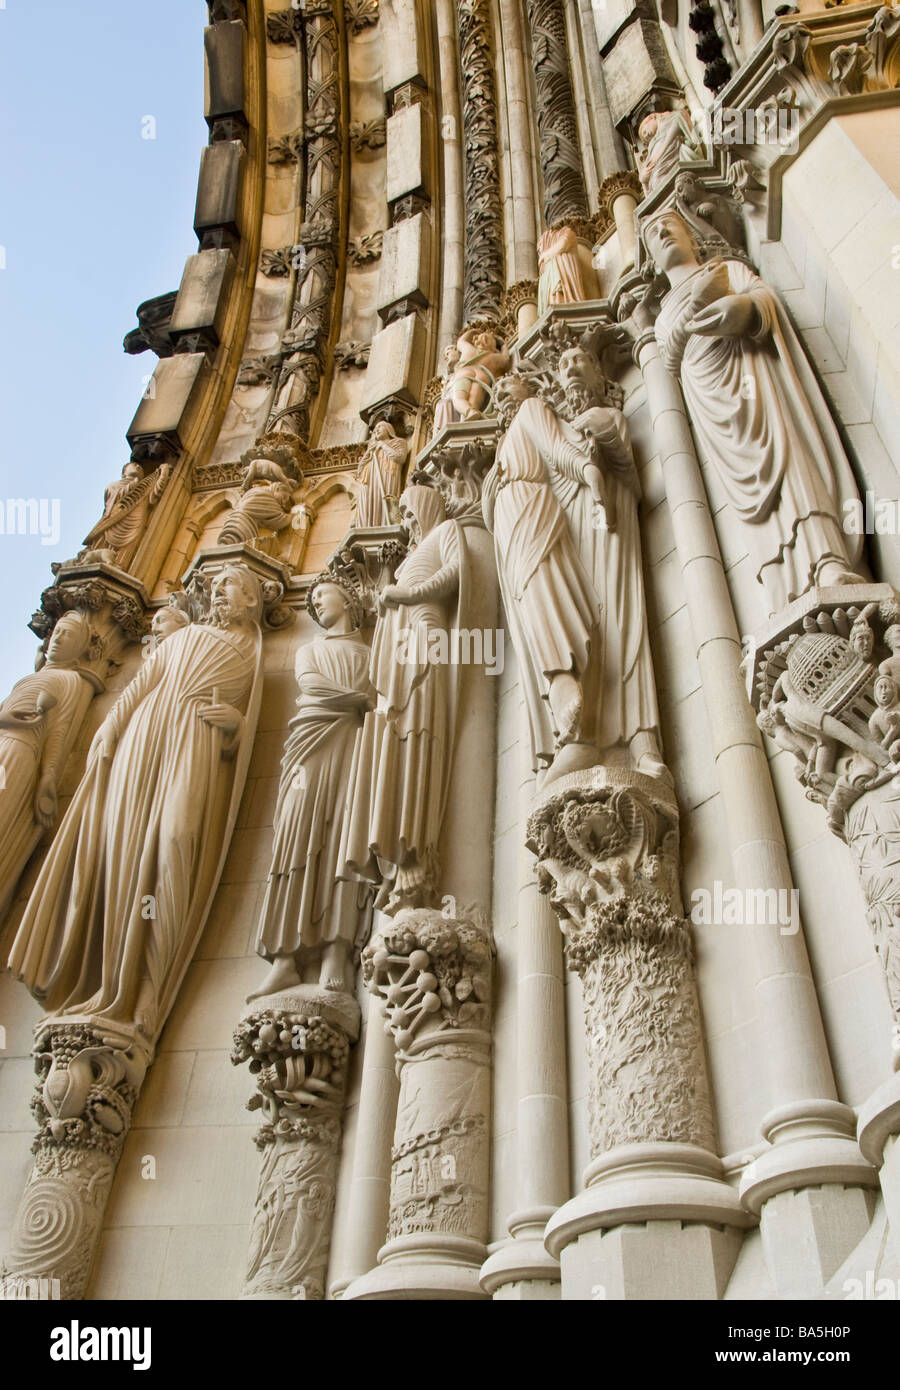 Cathedral of St John the Divine in New York City - Stock Image